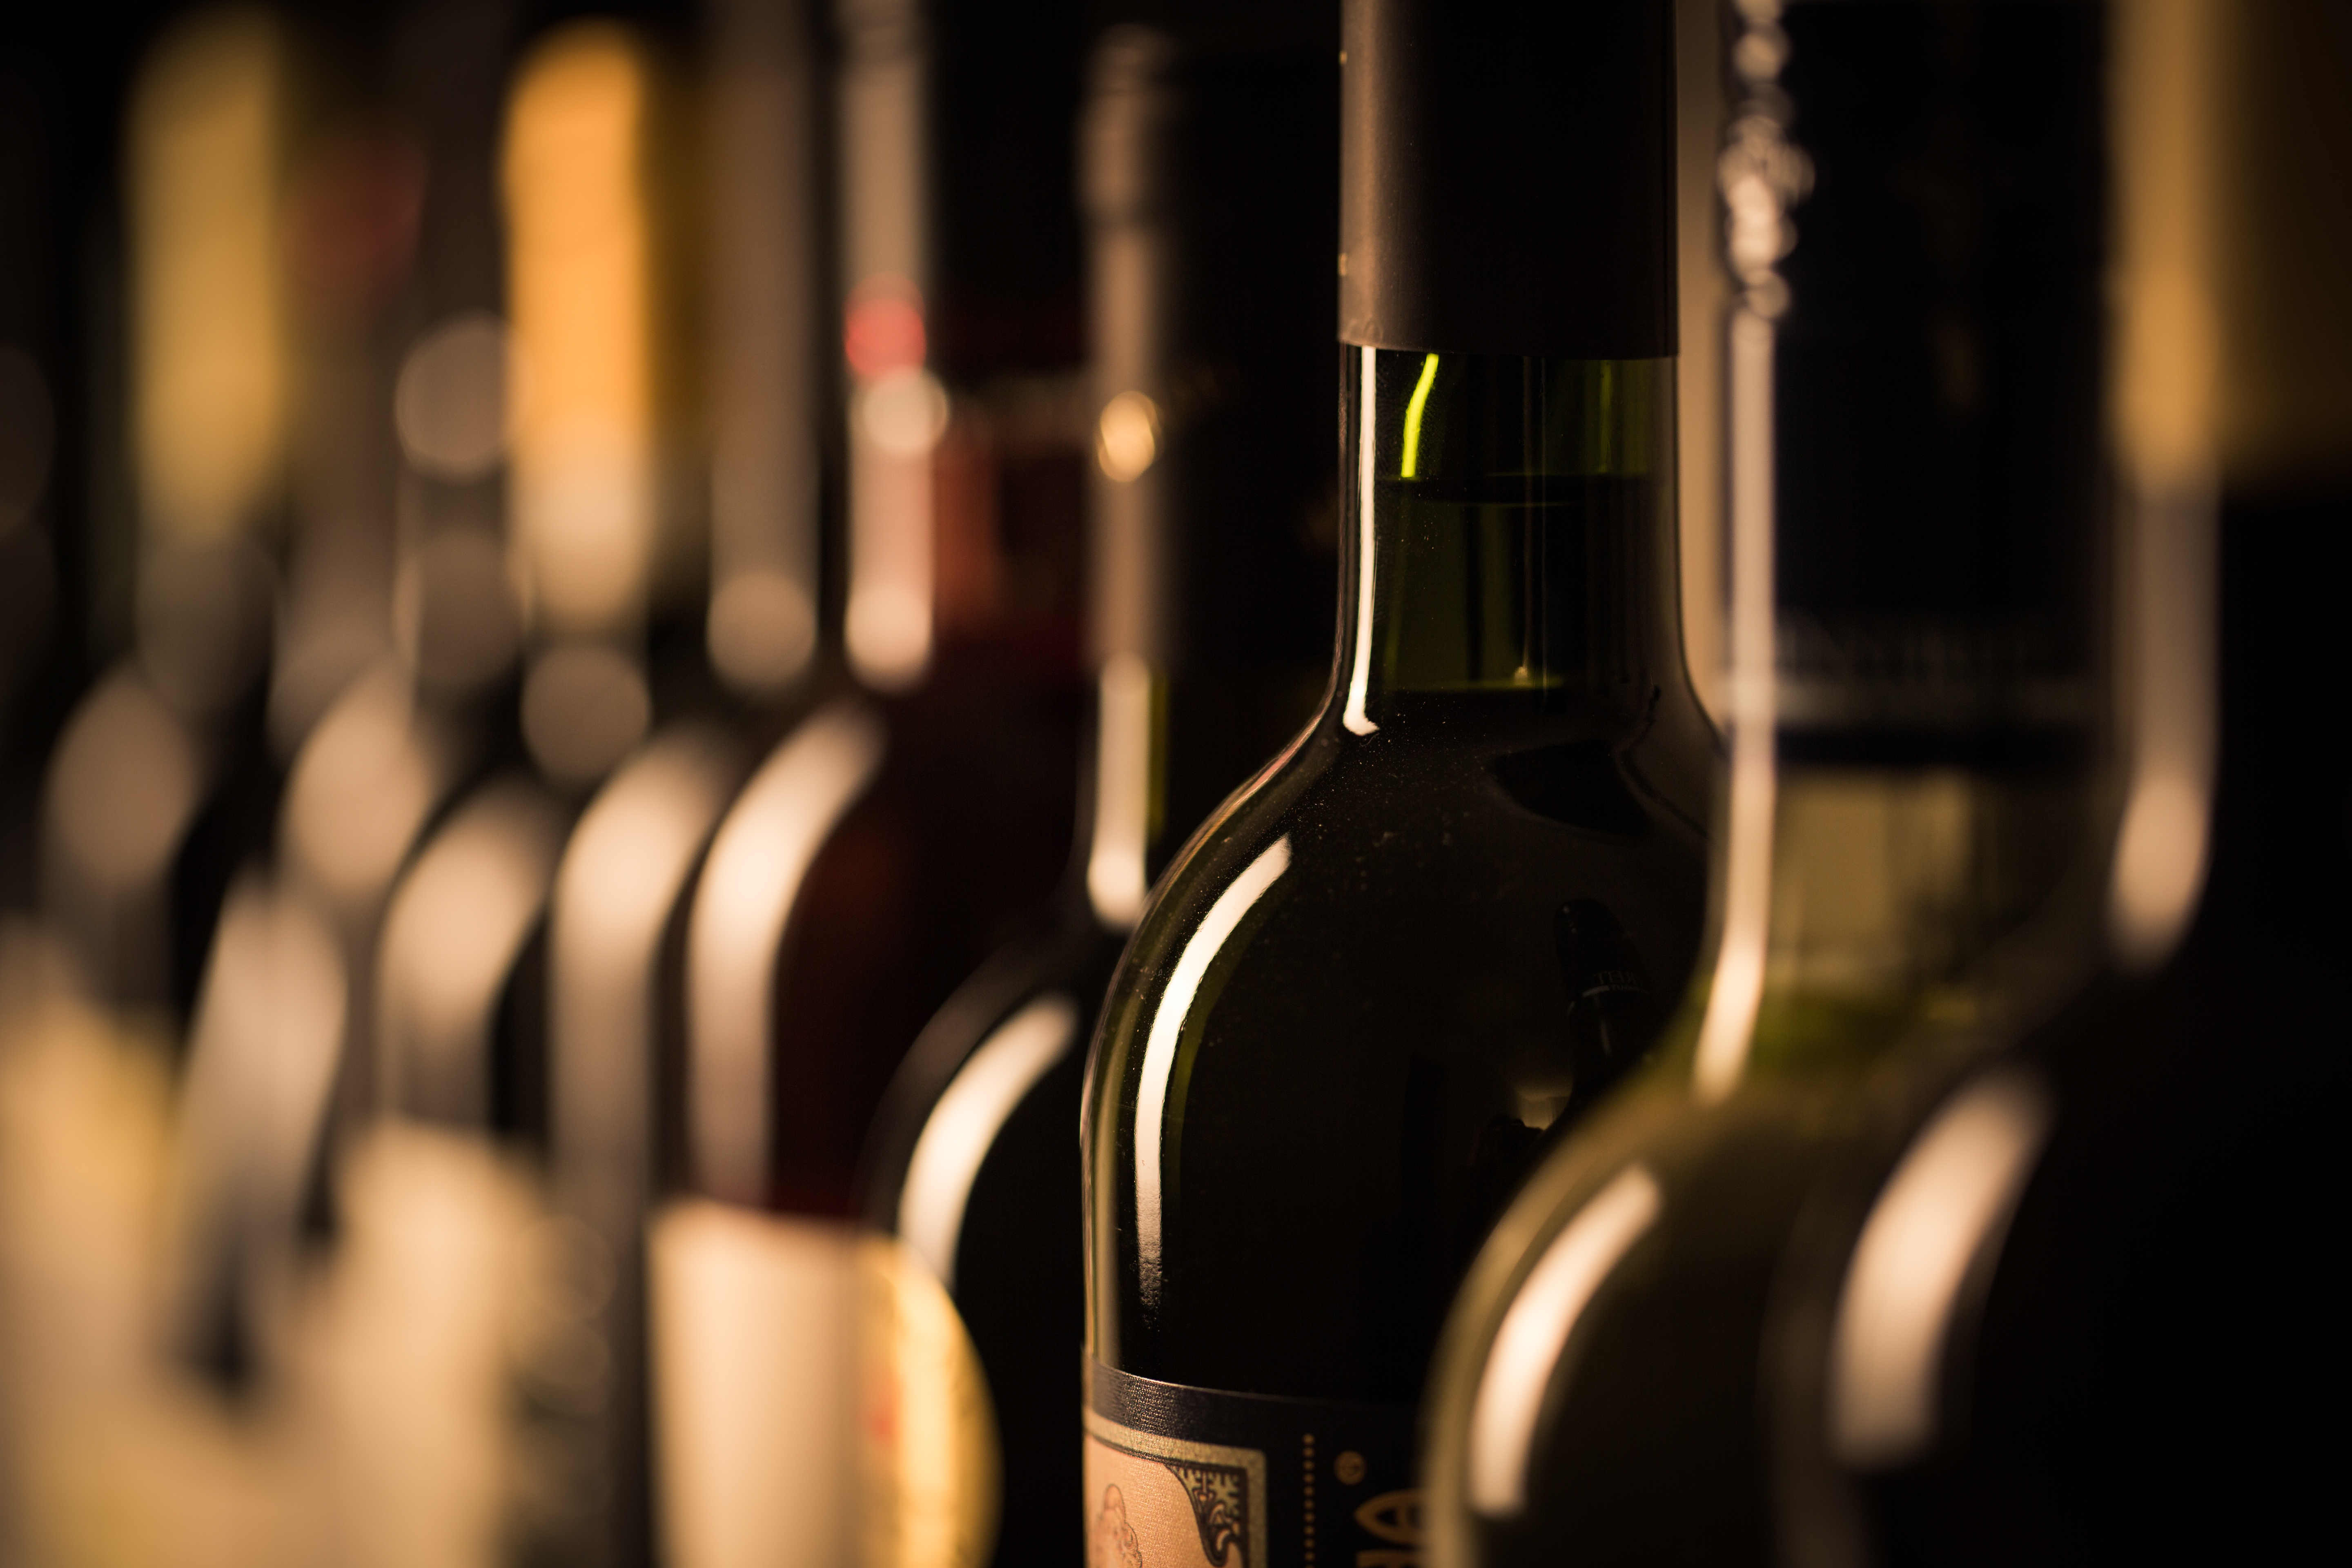 A closeup of a row of wine bottles